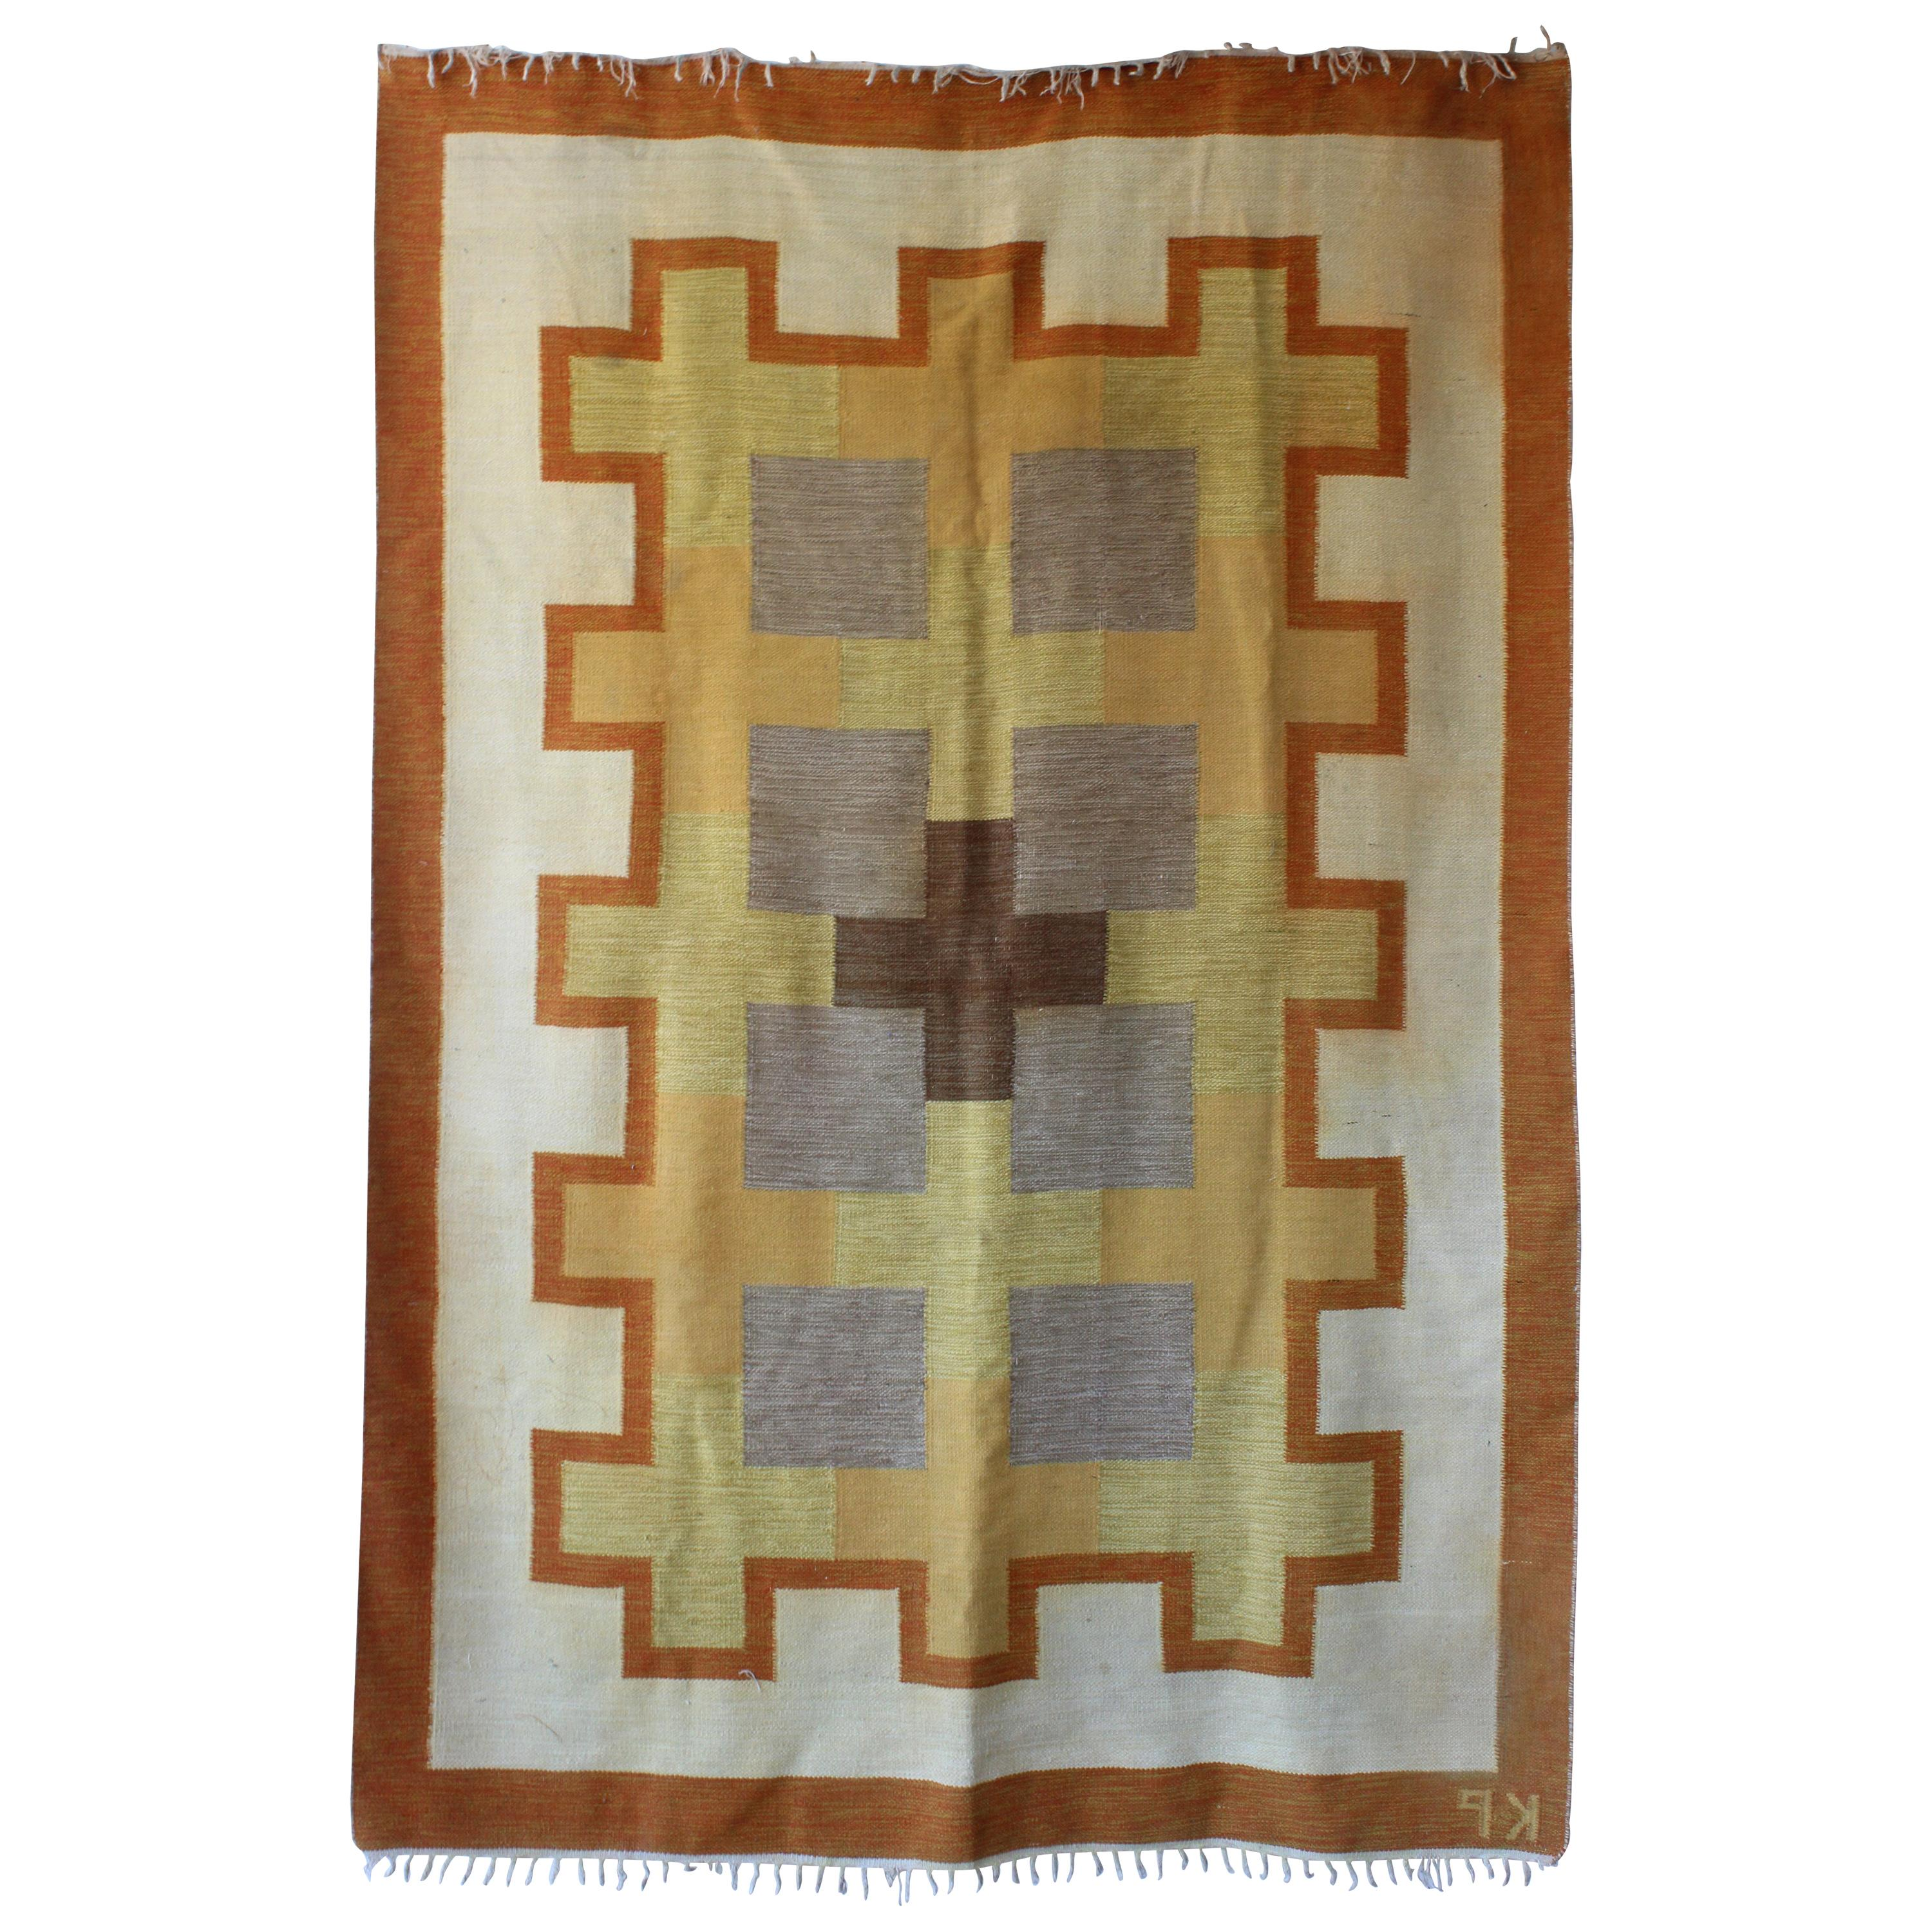 Swedish Flat-Weave Wool Rug by Kerstin Persson, 1960s